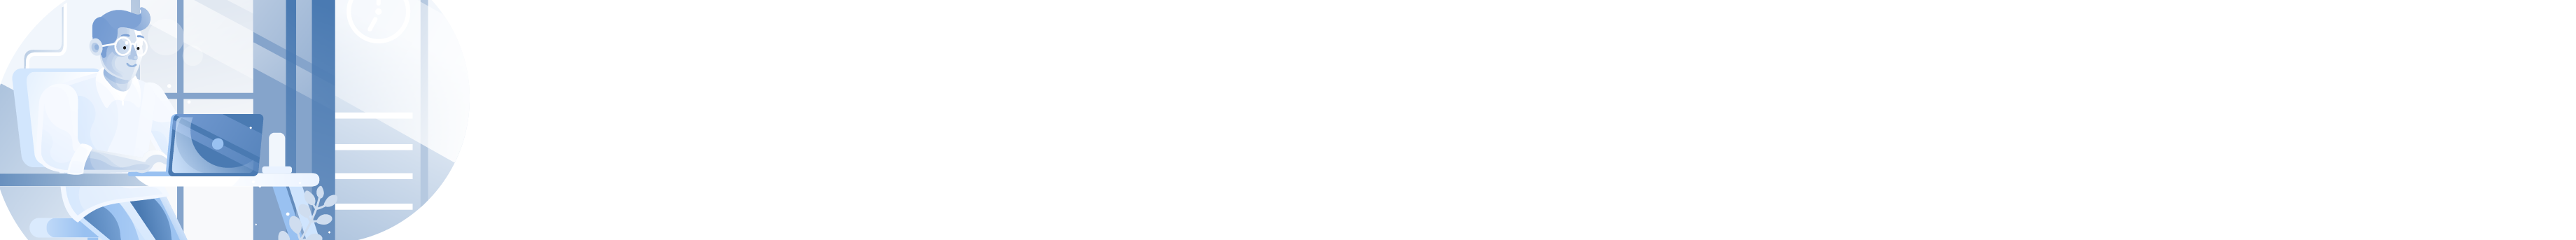 BannerWebCOVID19.png